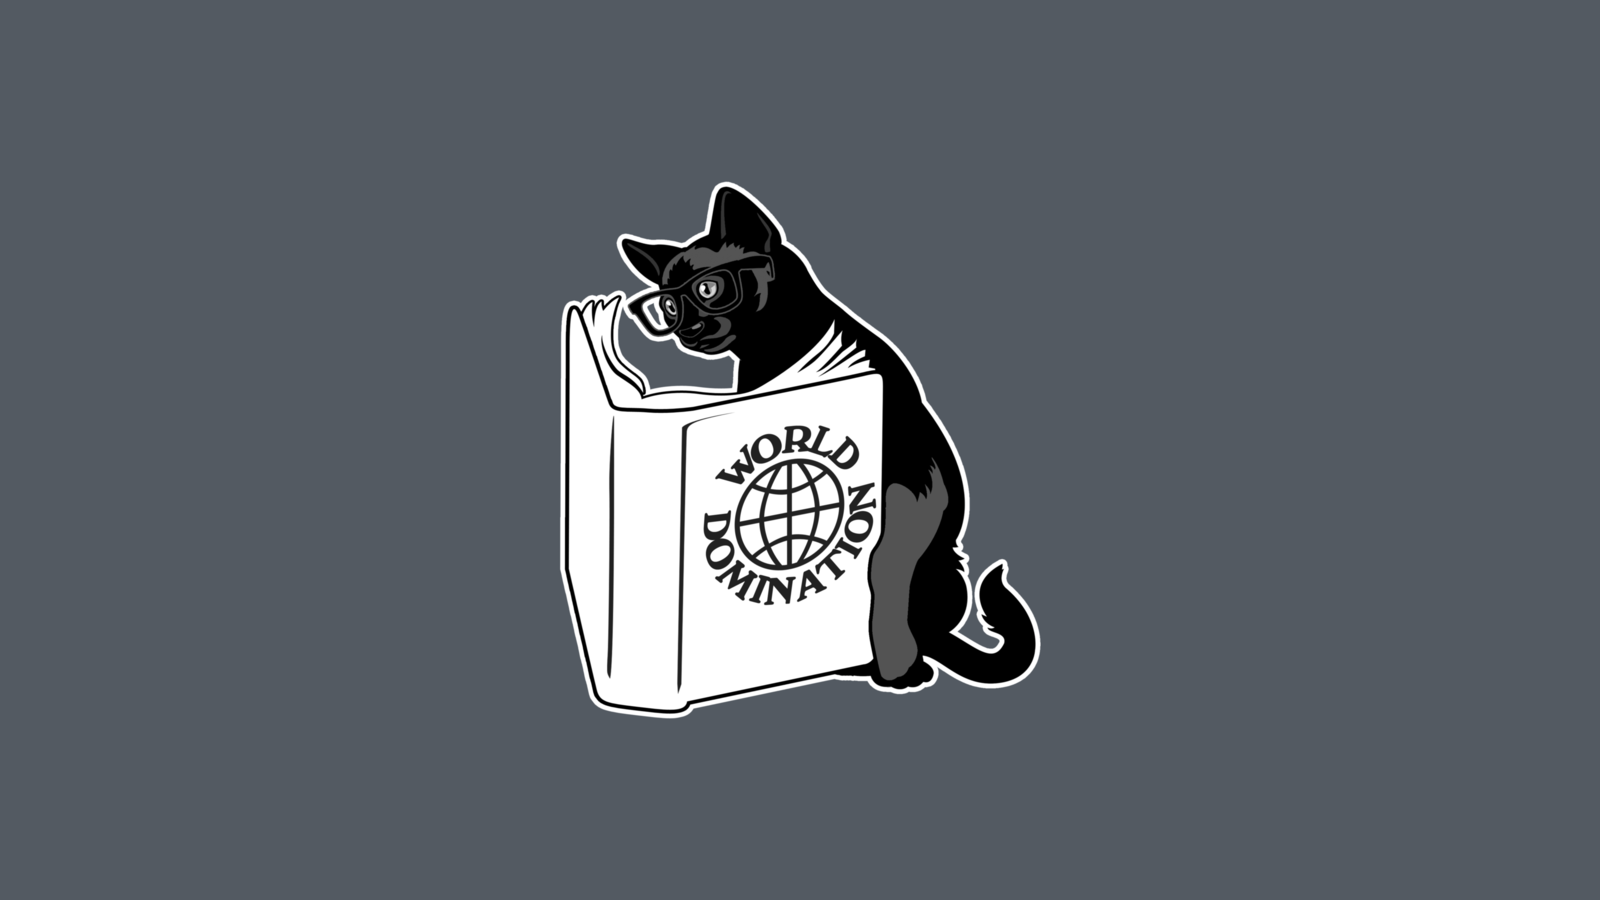 Reading Cat Png - Cat reading a book, gray background wallpapers and images - wallpapers,  pictures, photos